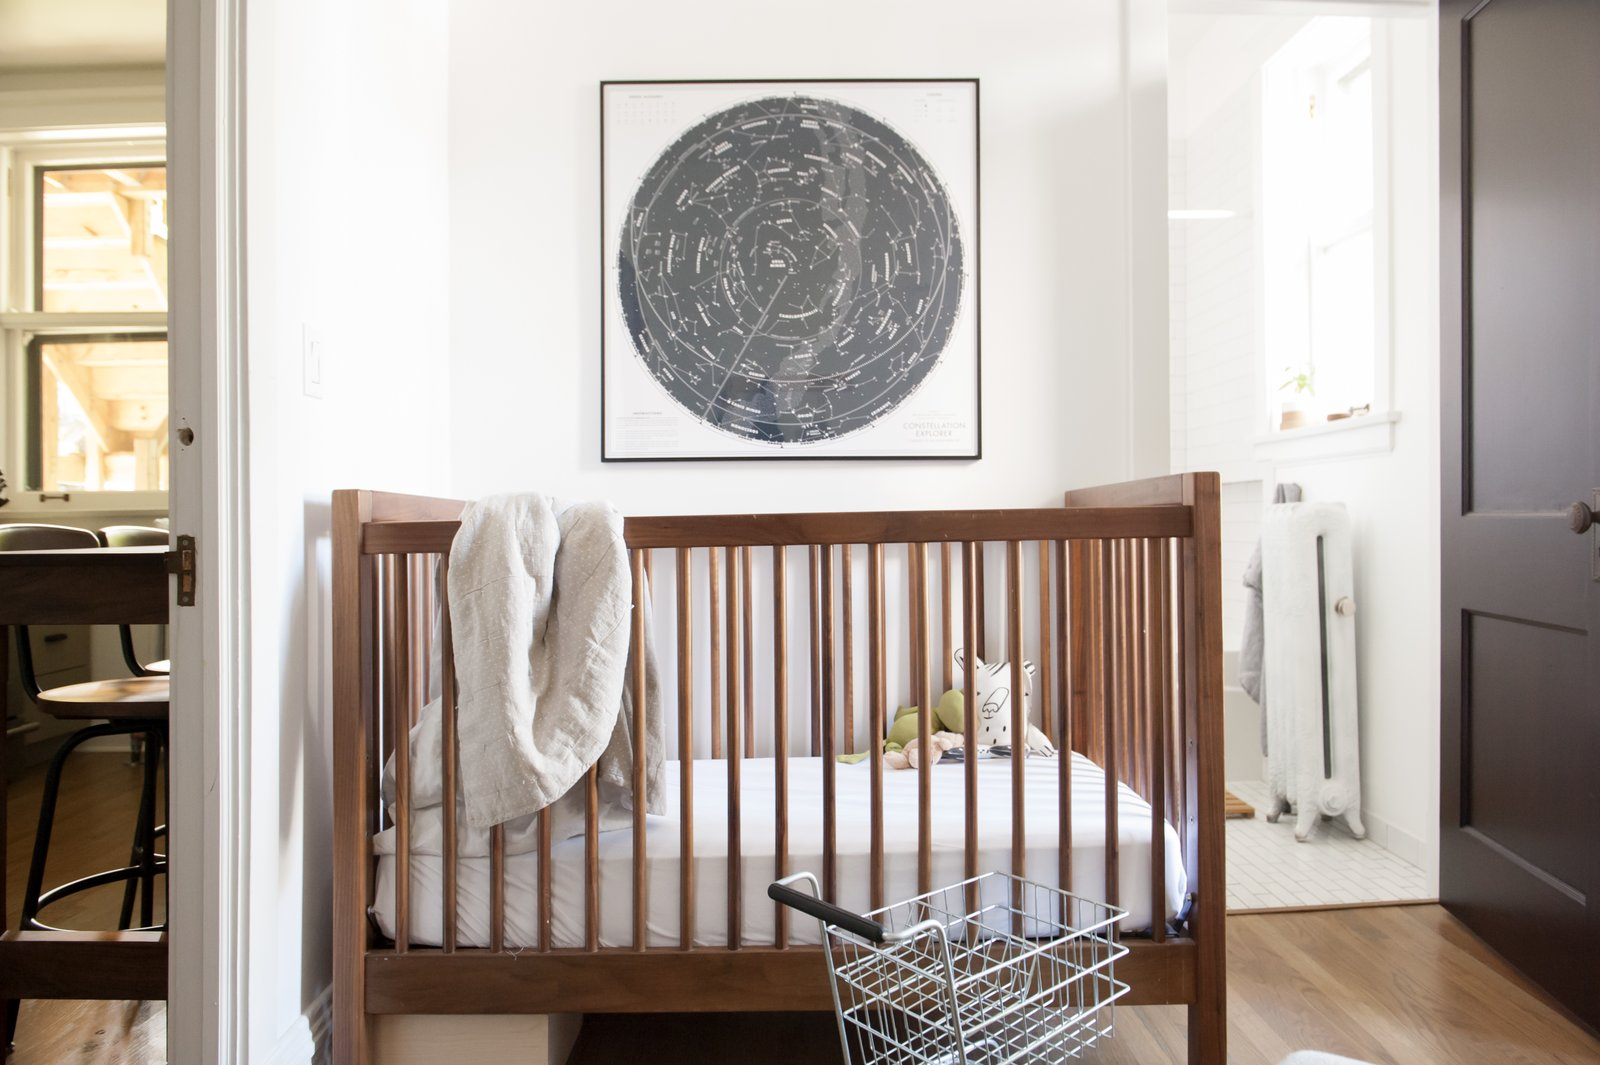 Tagged: Kids Room, Bedroom, Bed, Medium Hardwood Floor, Neutral Gender, and Toddler Age.  Best Photos from Simple and Beautiful Chicago Family Apartment